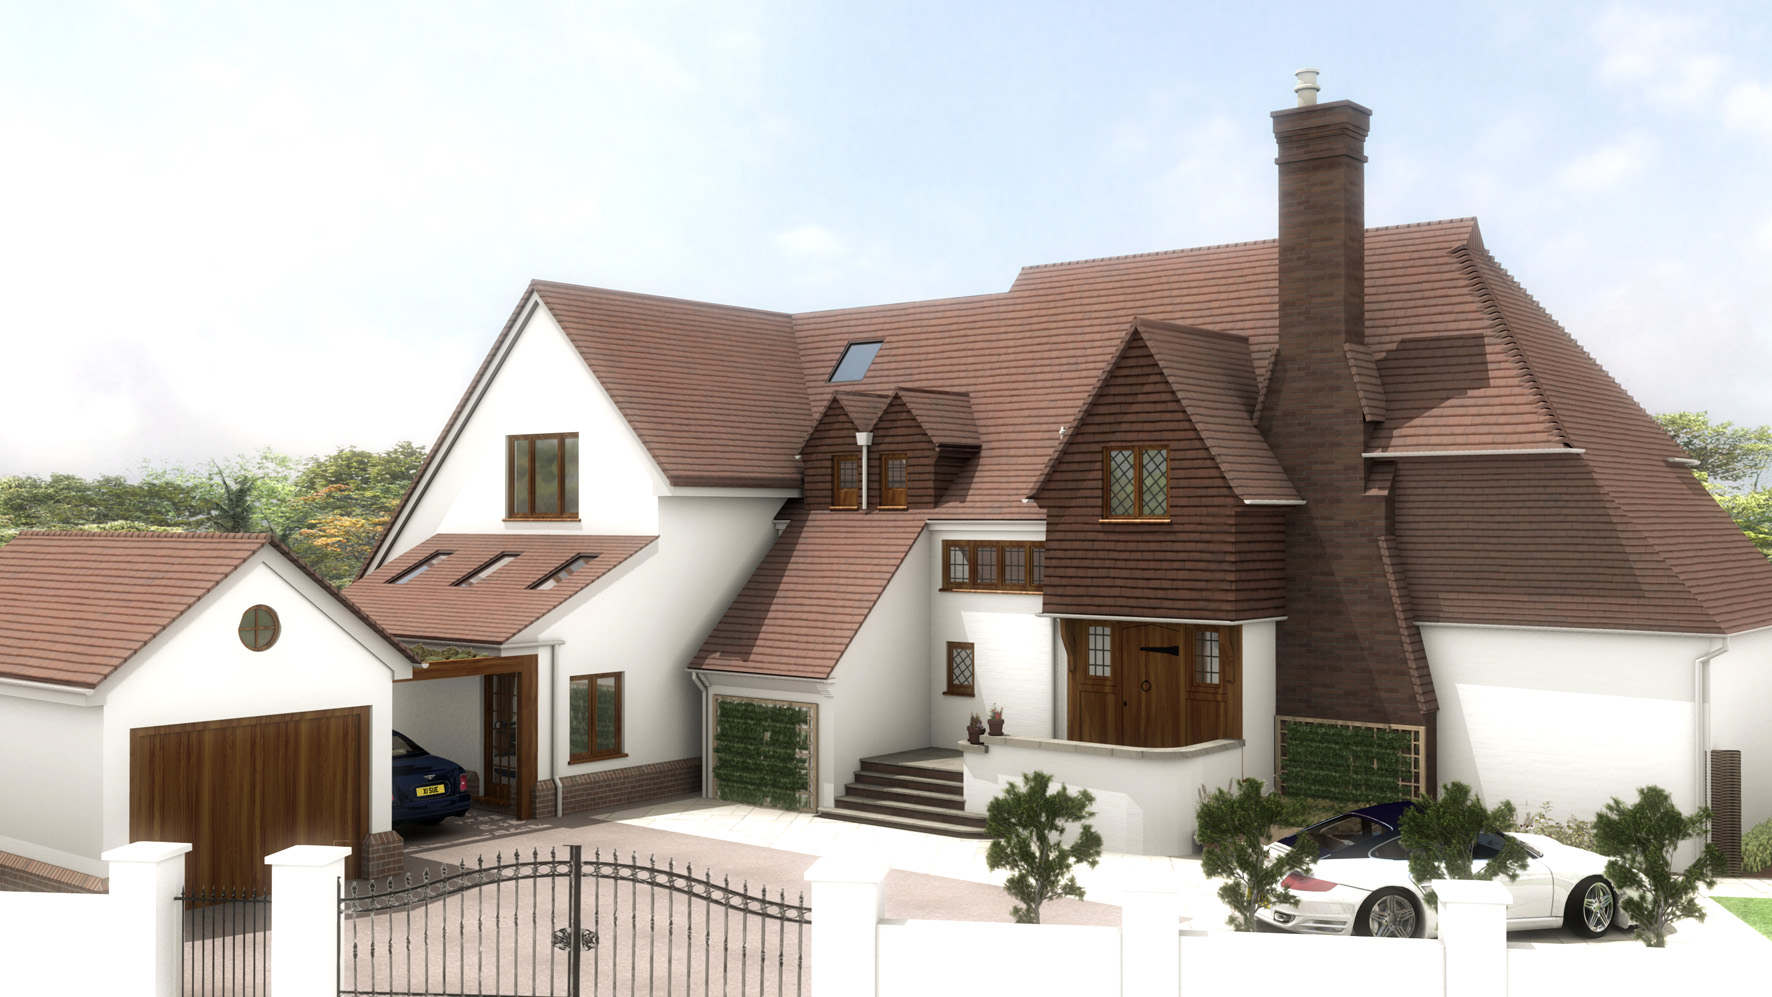 Front elevation view illustrating new garage and seamless blending of the existing house with the proposed extension.